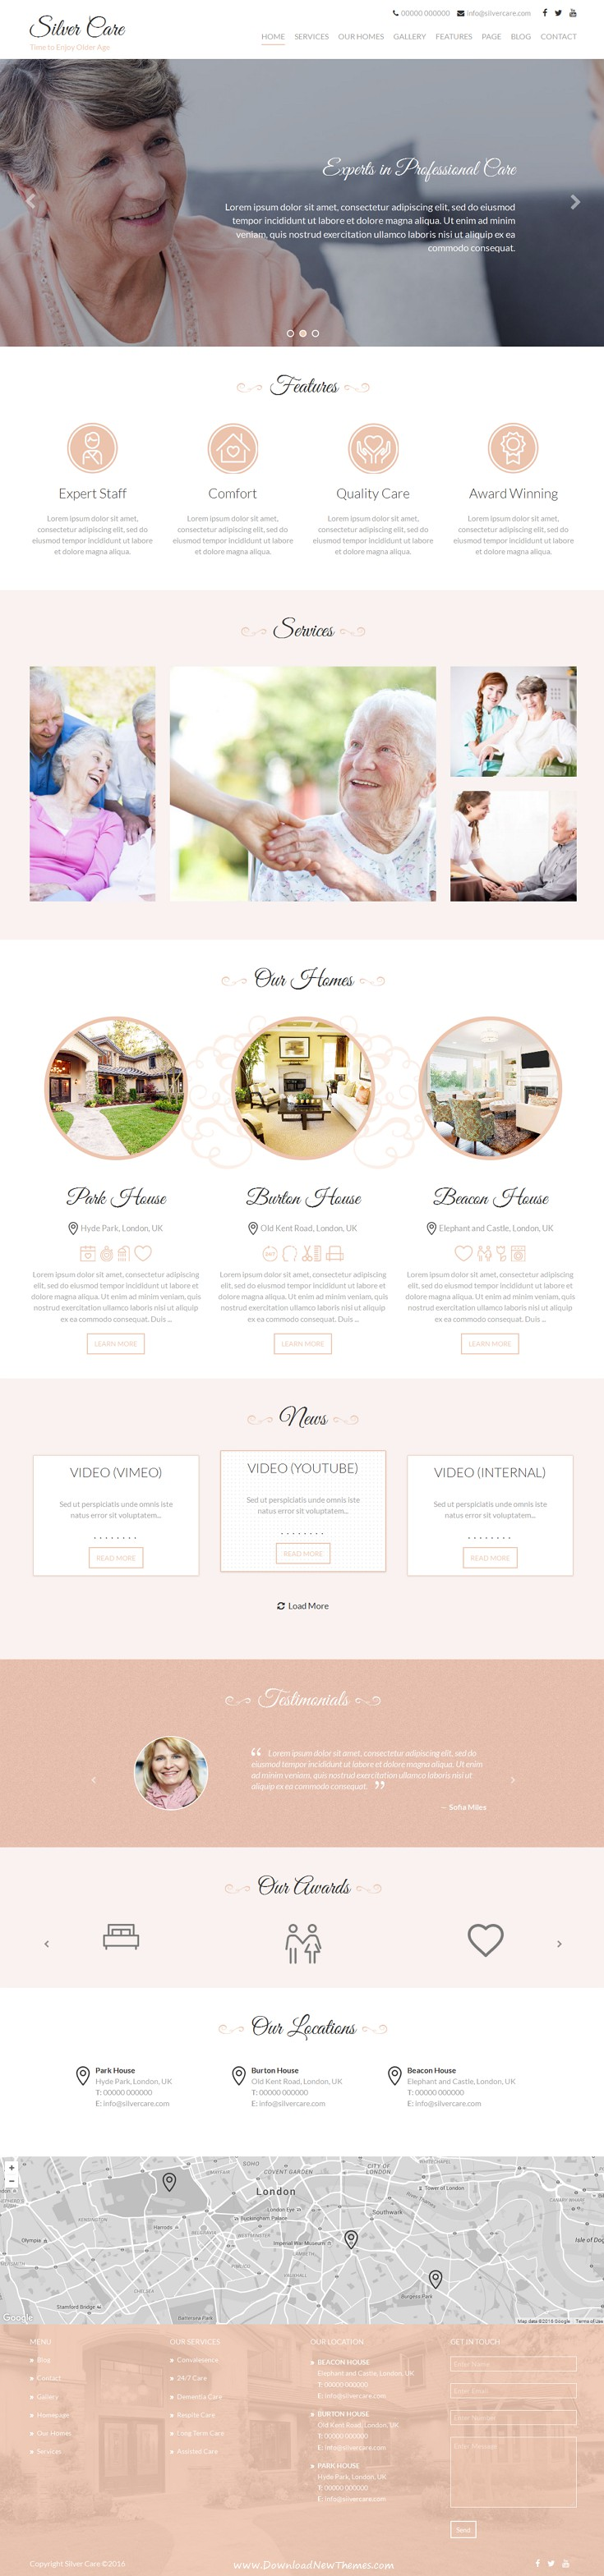 Silver Care is a premium WordPress theme designed for the